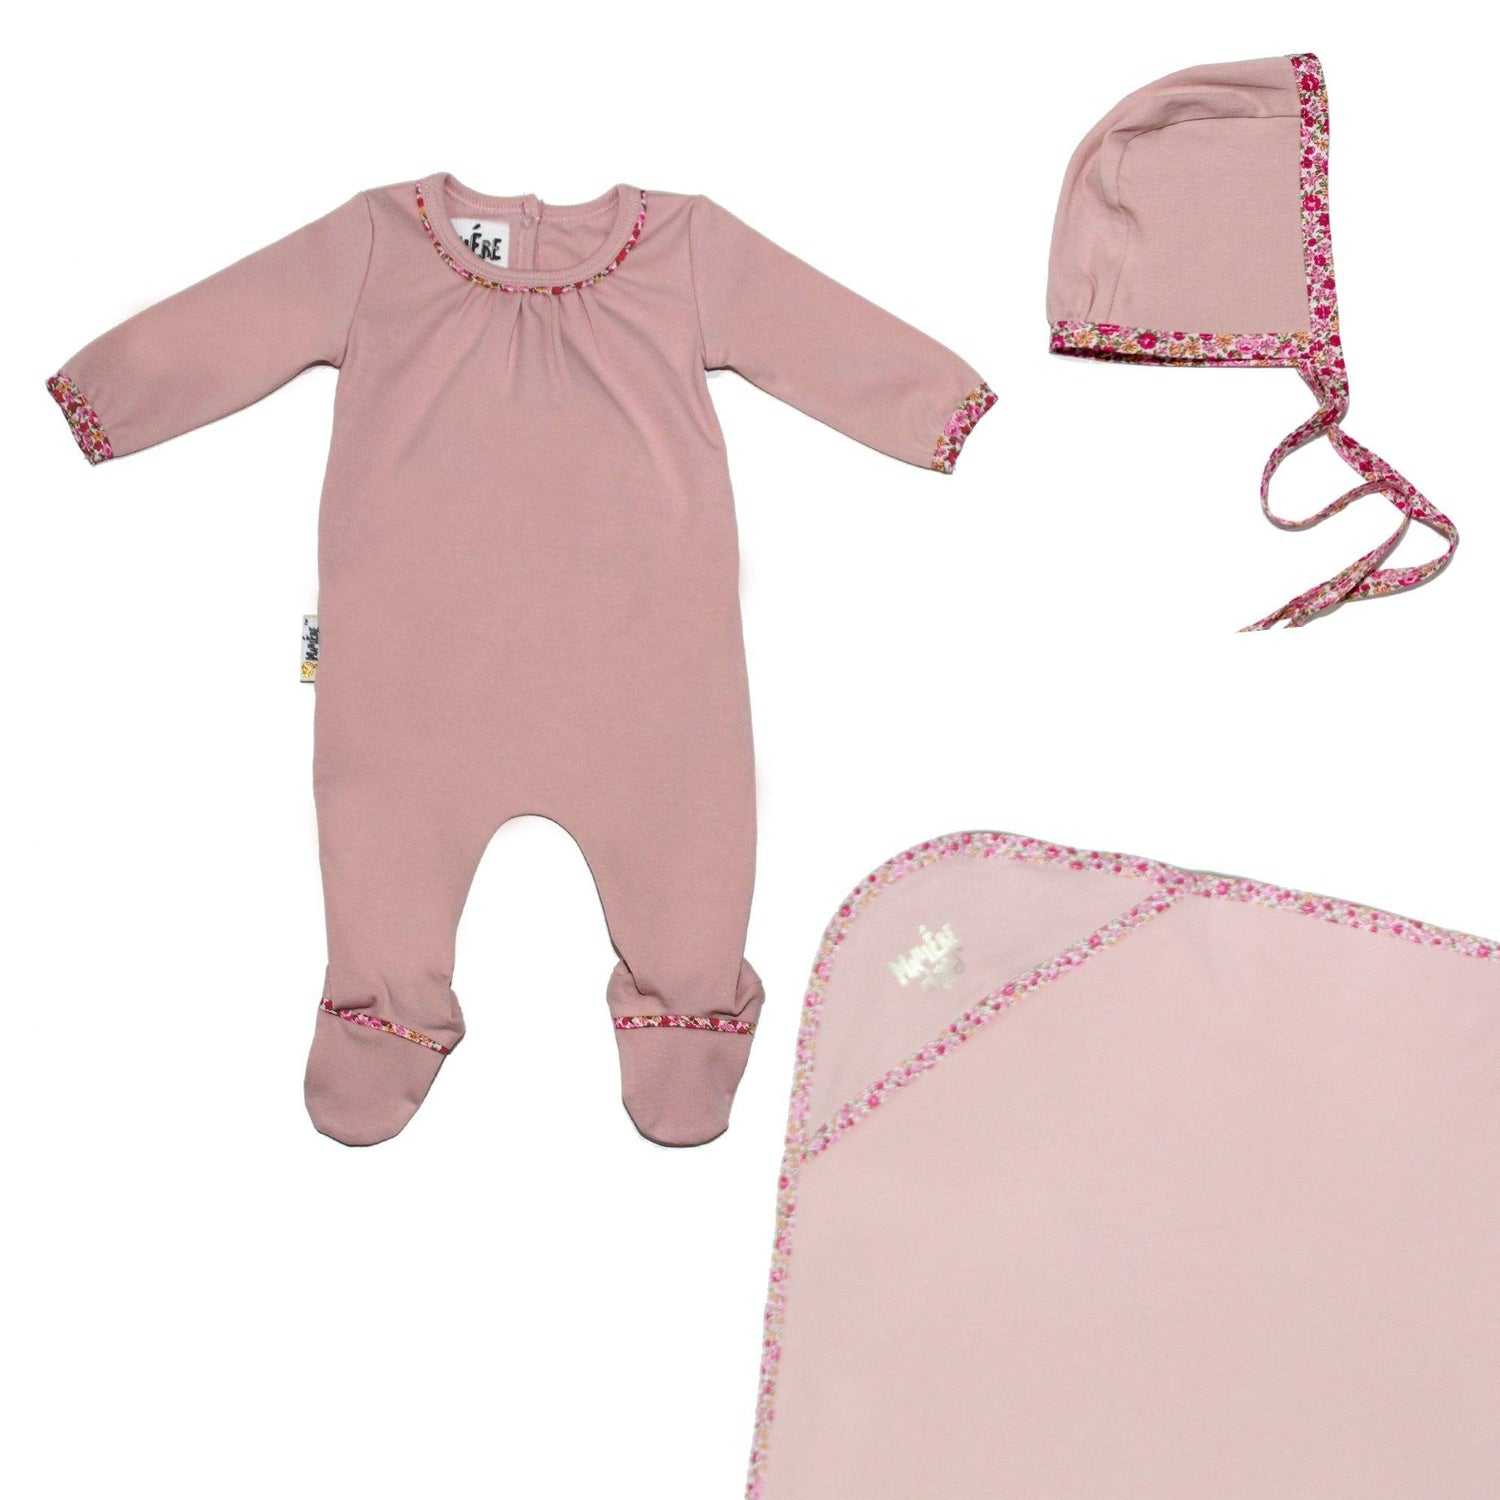 Floral Trim Footie Set Baby Sets Maniere Accessories Soft Pink 3 Month